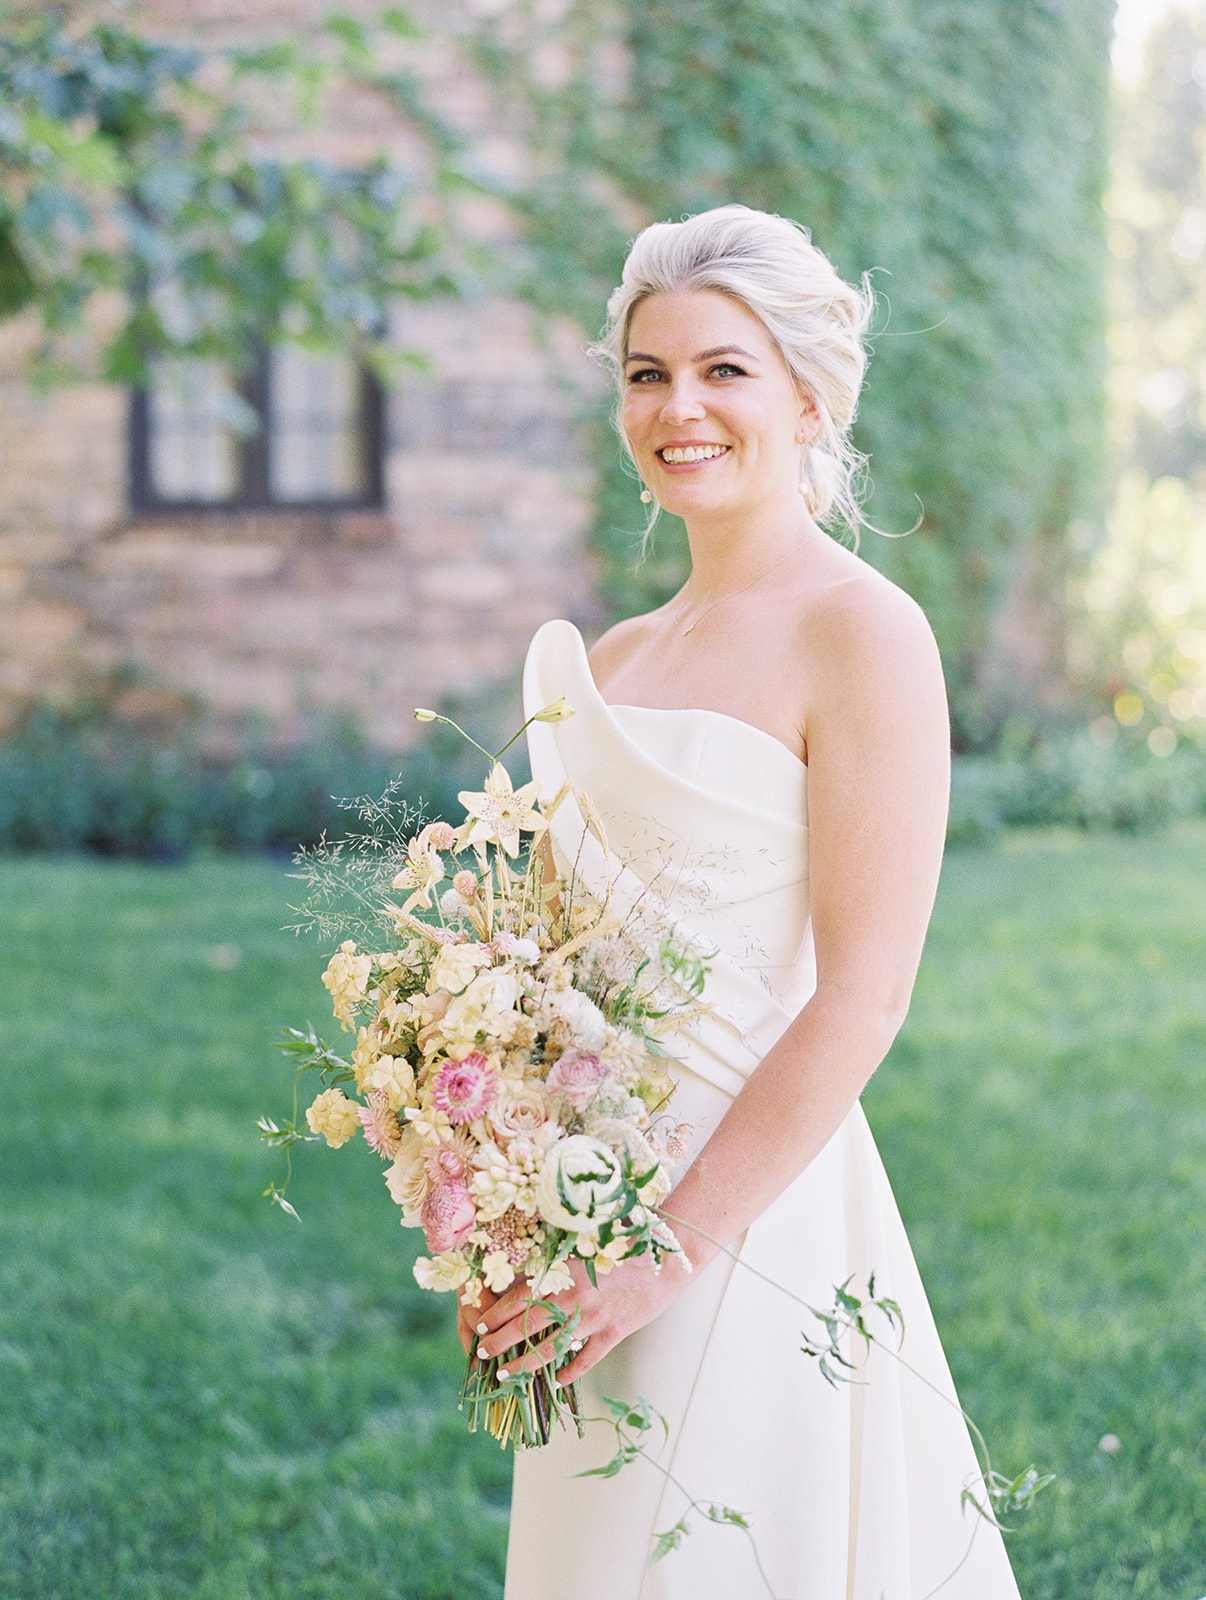 bride smiling holding various white floral wedding bouquet